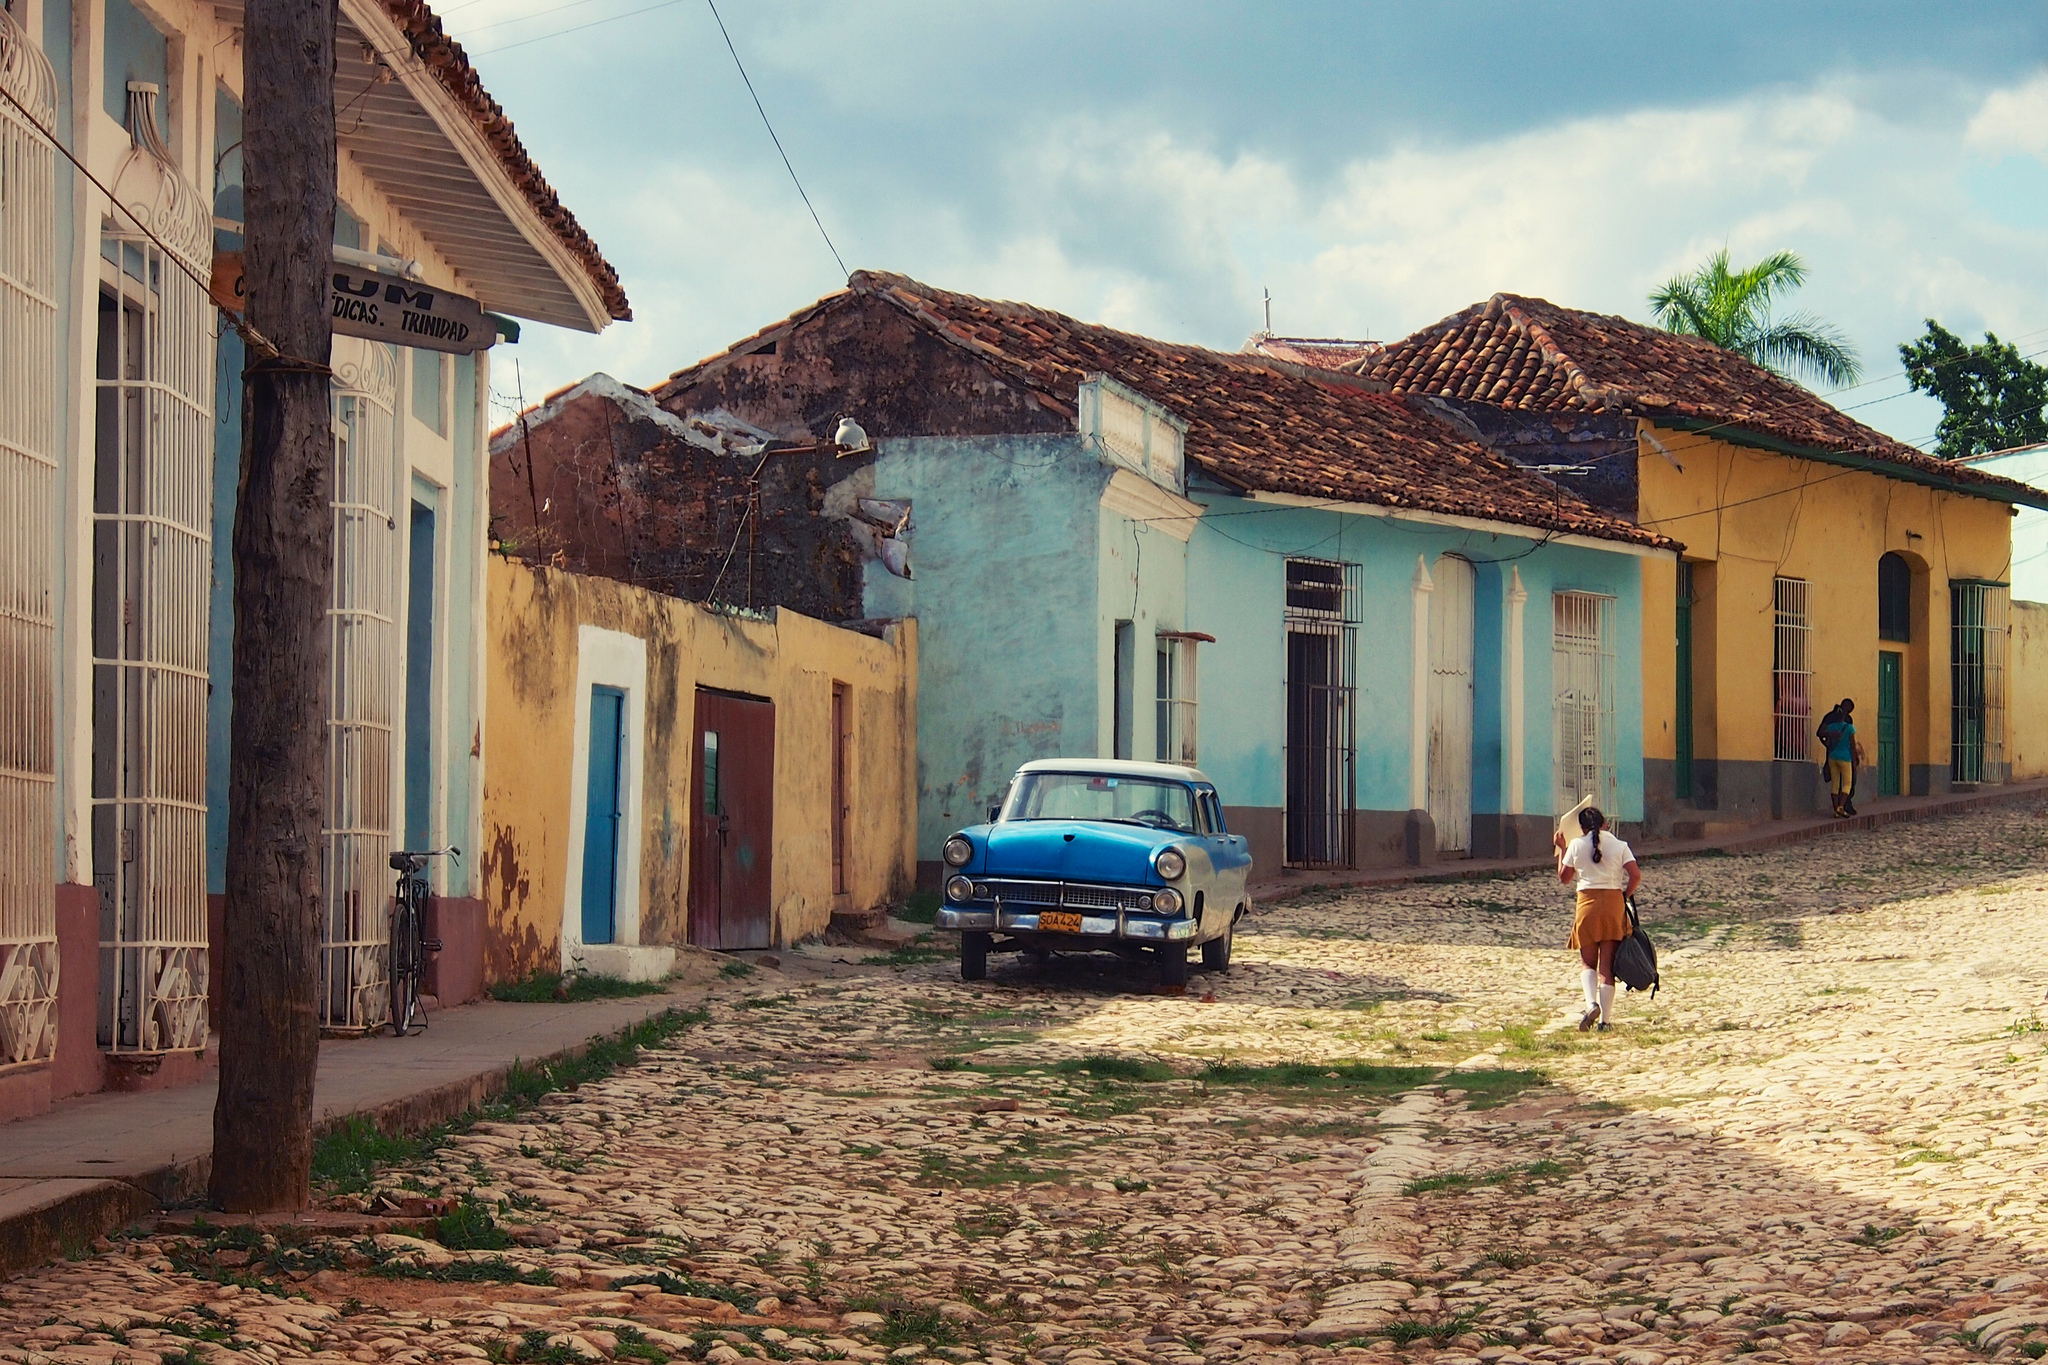 Journalists in Cuba have been barred from reporting about damage from Hurricane Matthew. Photo by balintfoeldesi on Flickr and used with Creative Commons license.